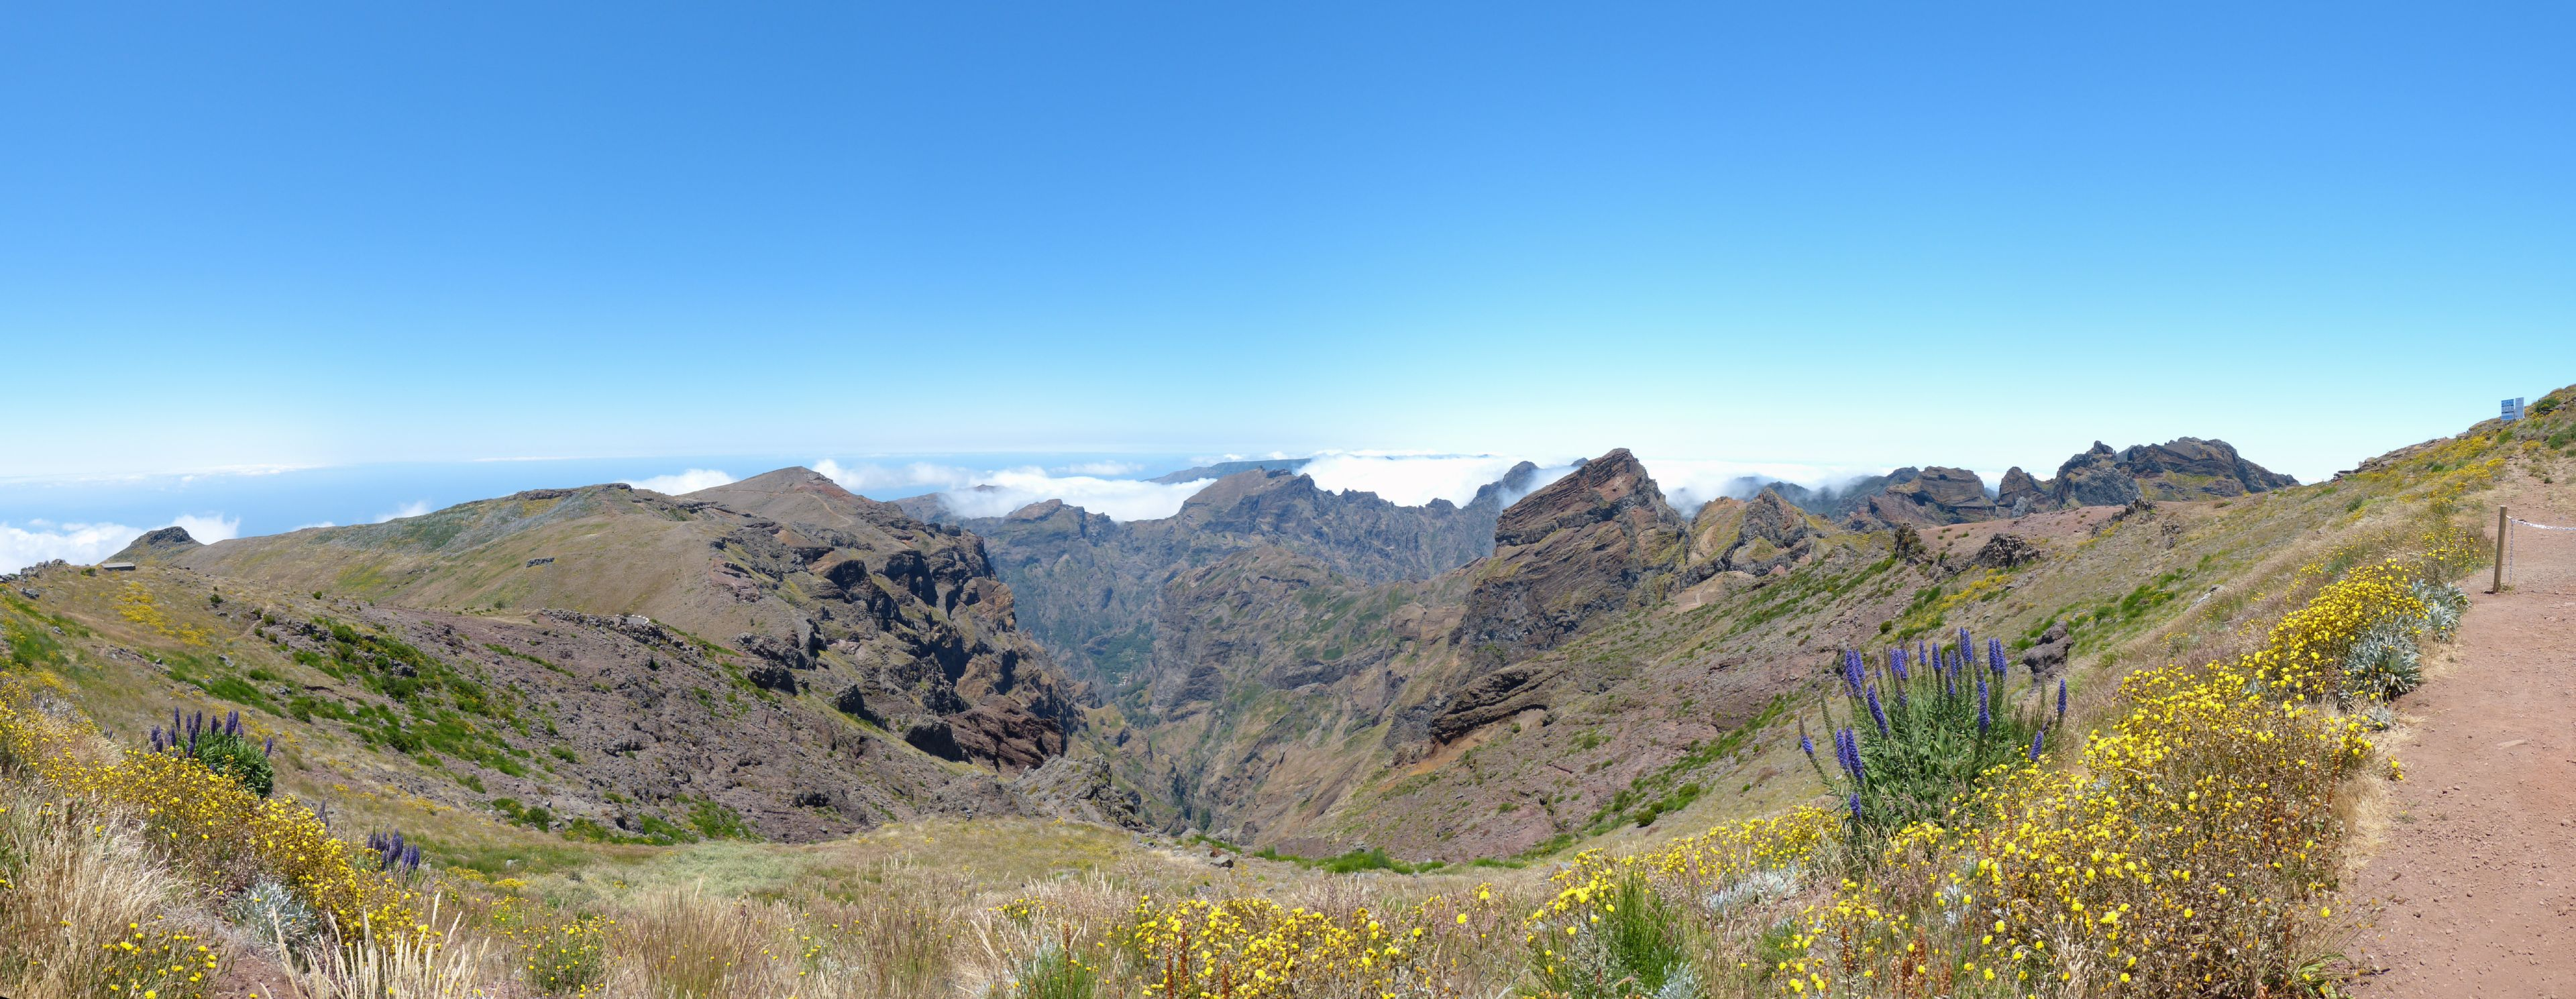 Panorama am Pico do Arieiro